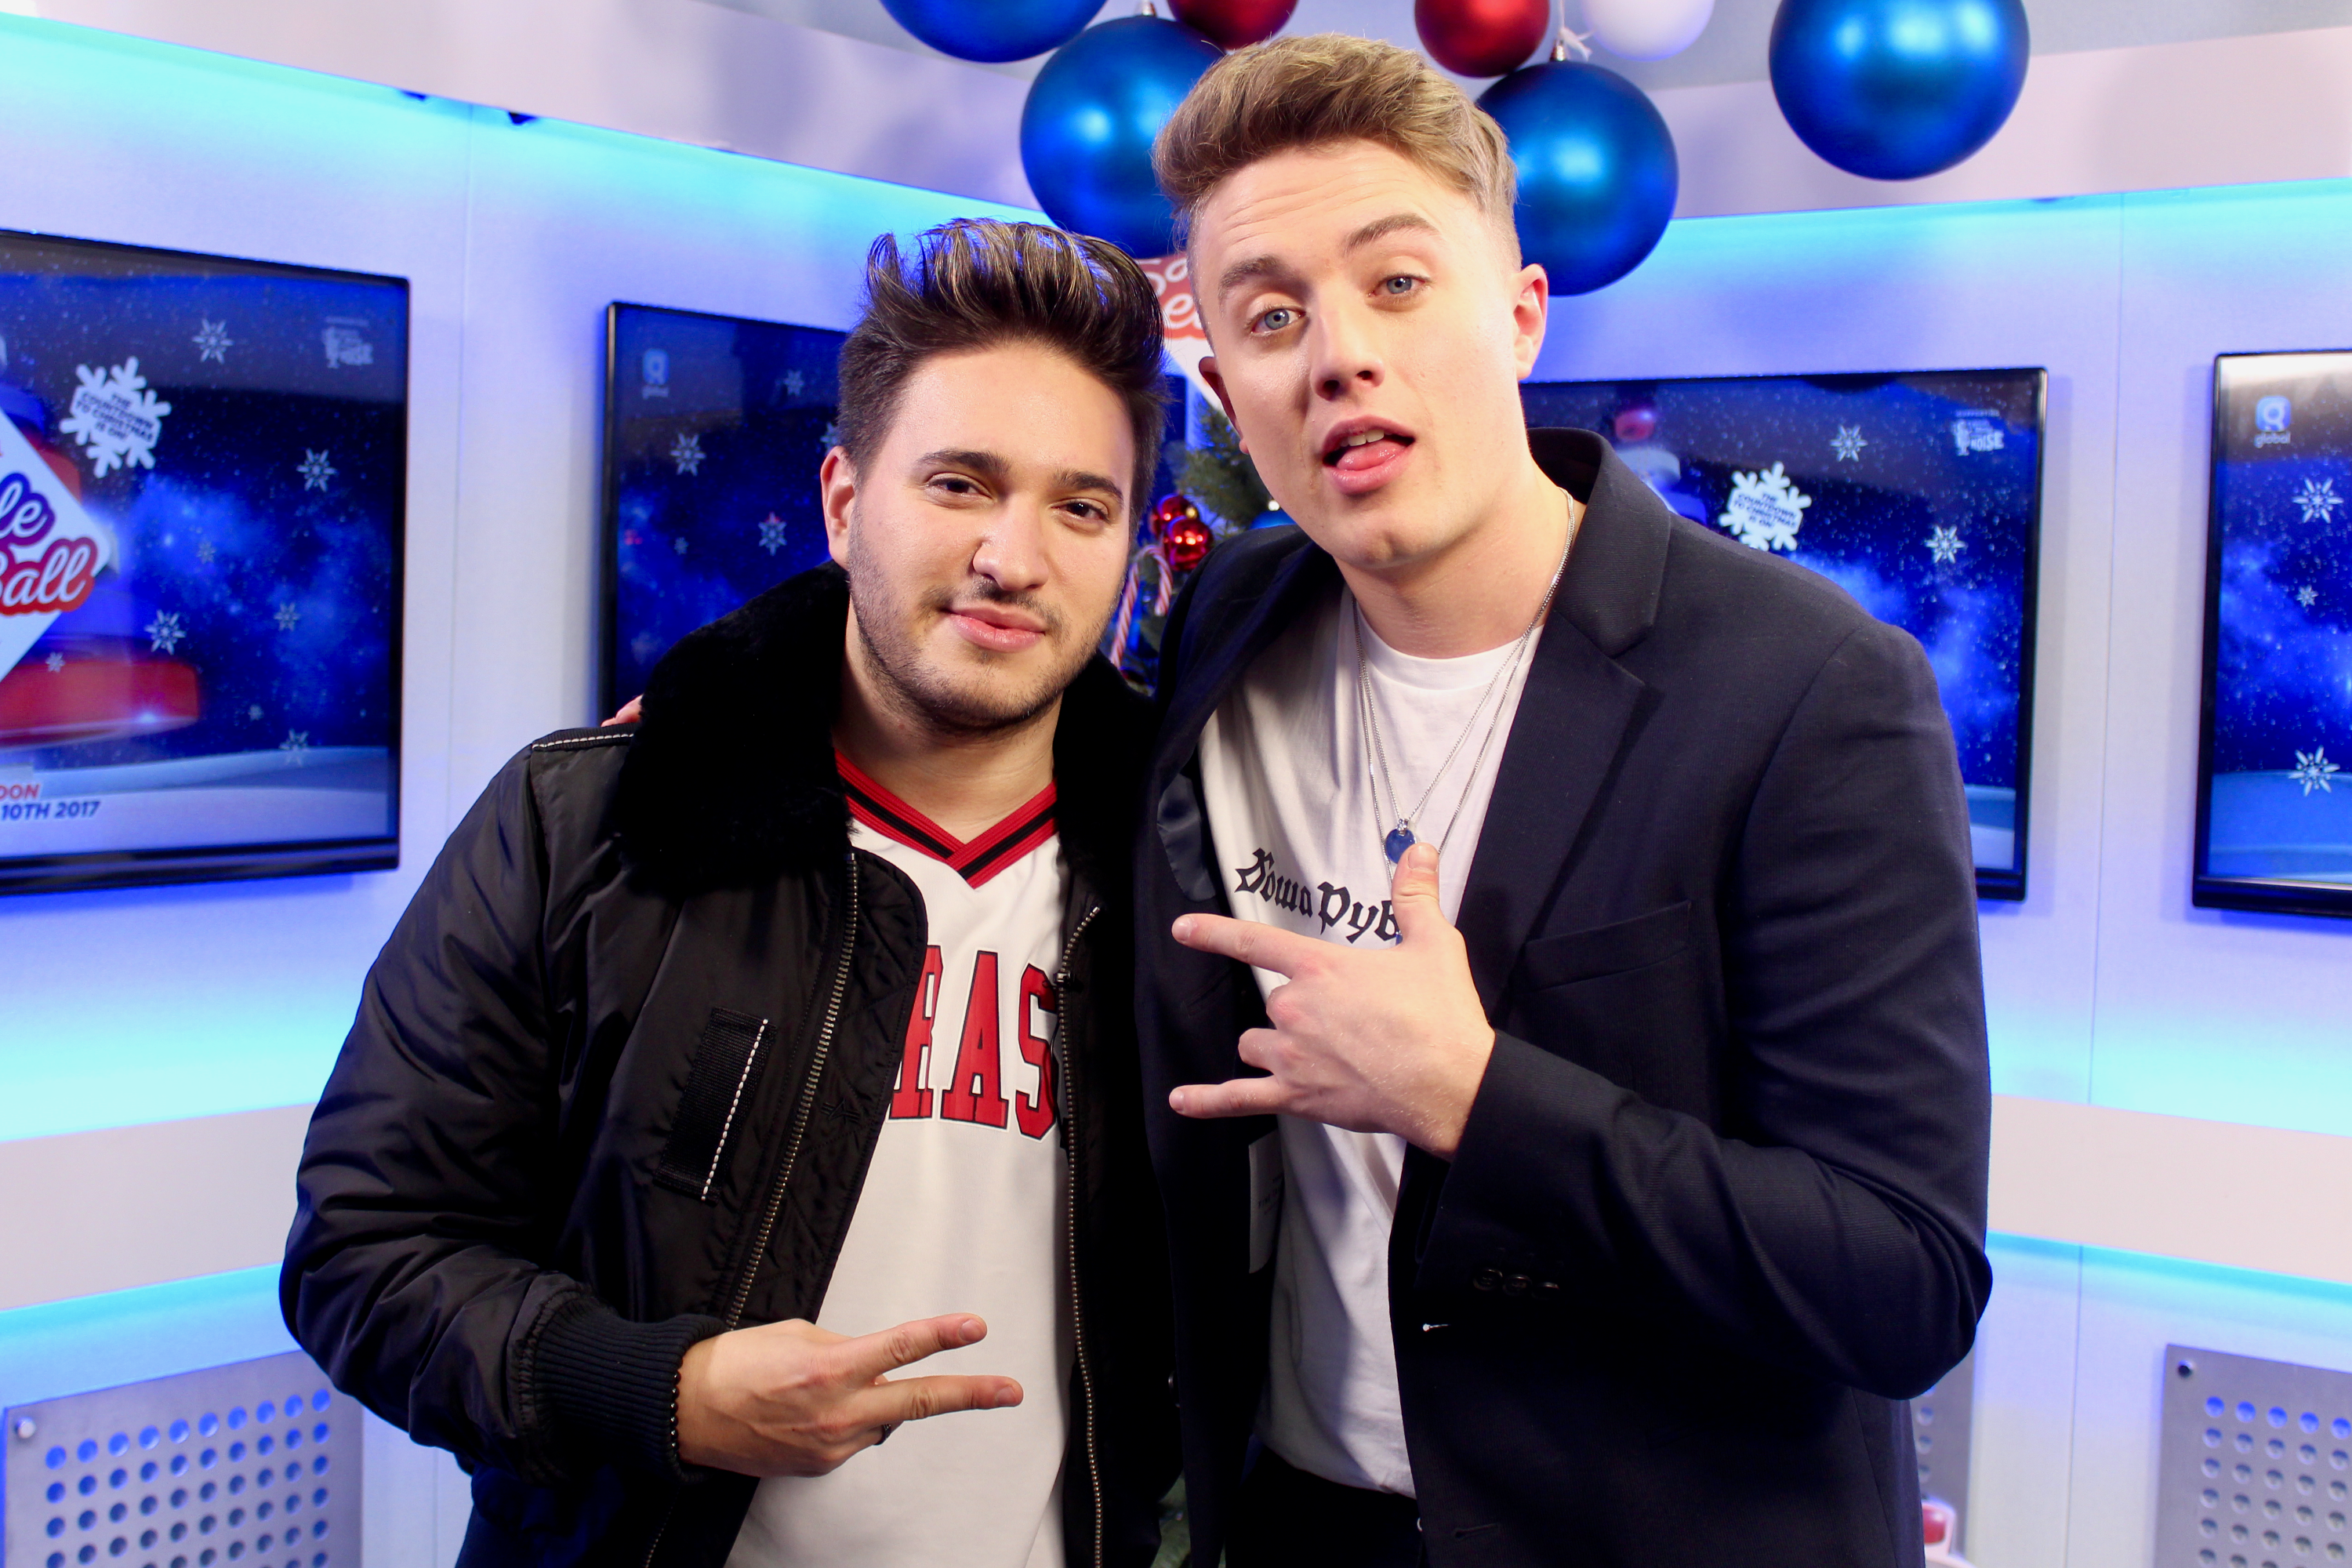 Jonas Blue with Roman Kemp